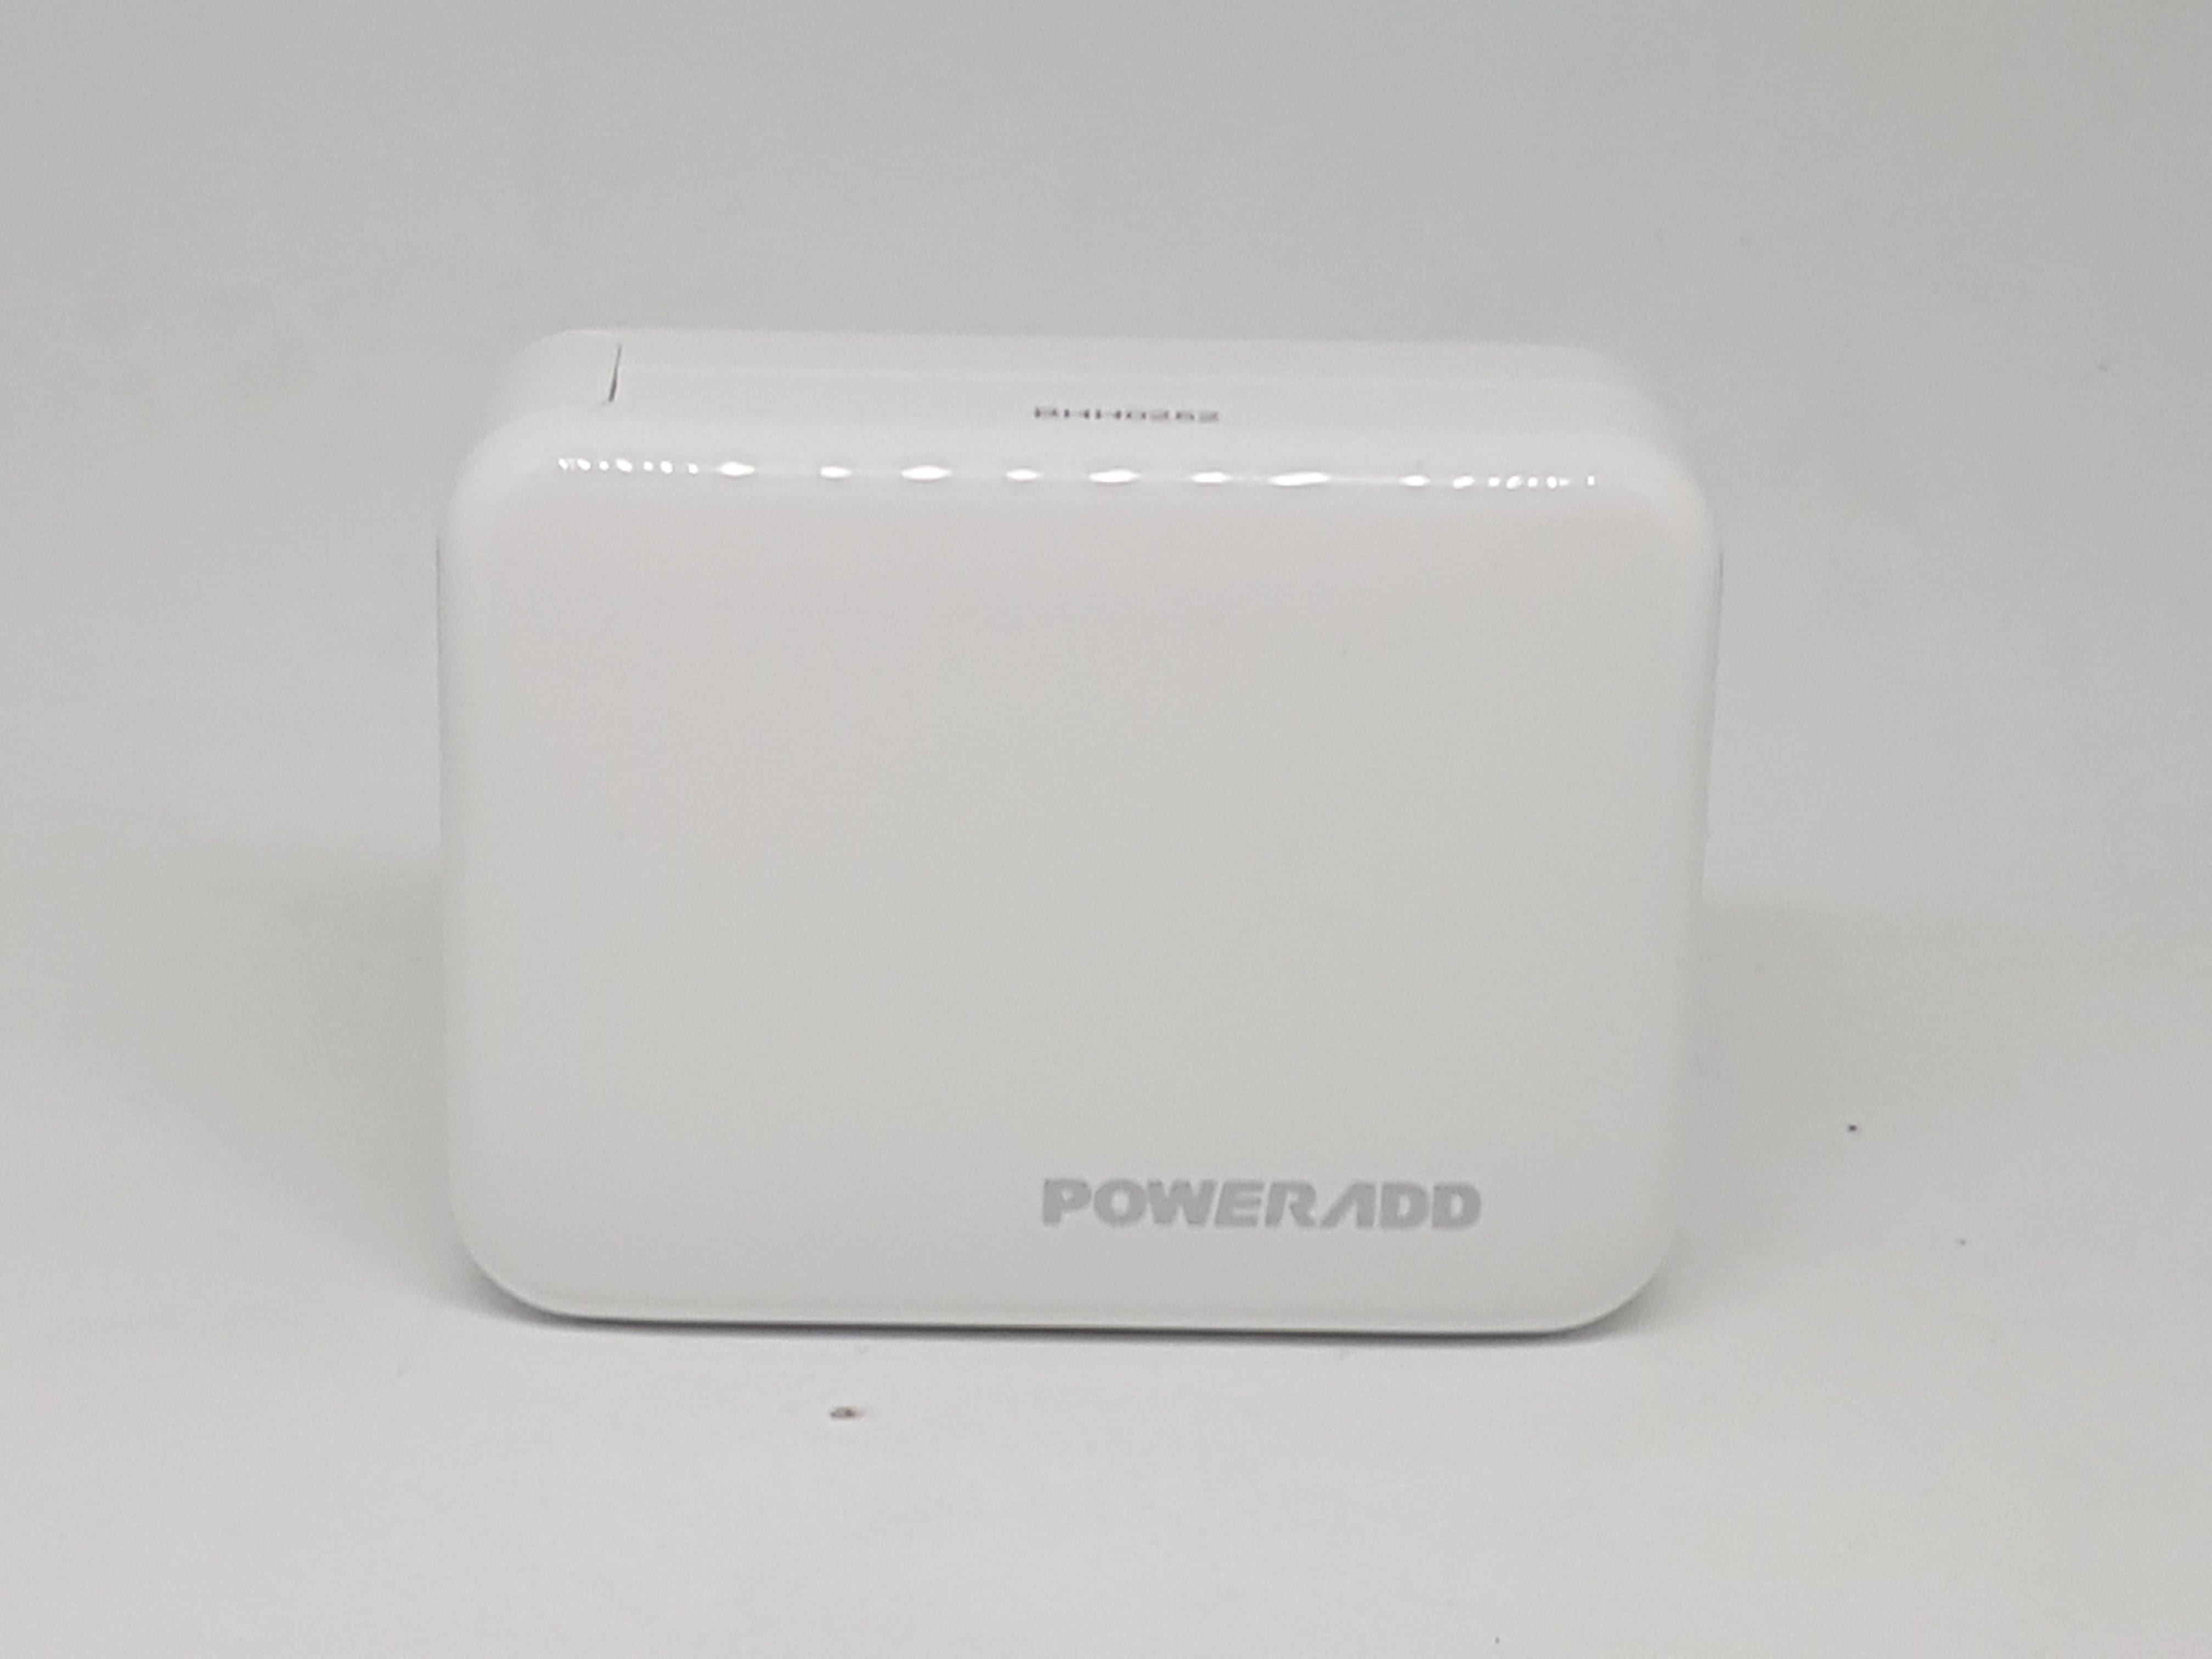 POWERADD-Chargeur-4-Ports-USB - POWERADD-Chargeur-4-Ports-USB-24.jpg